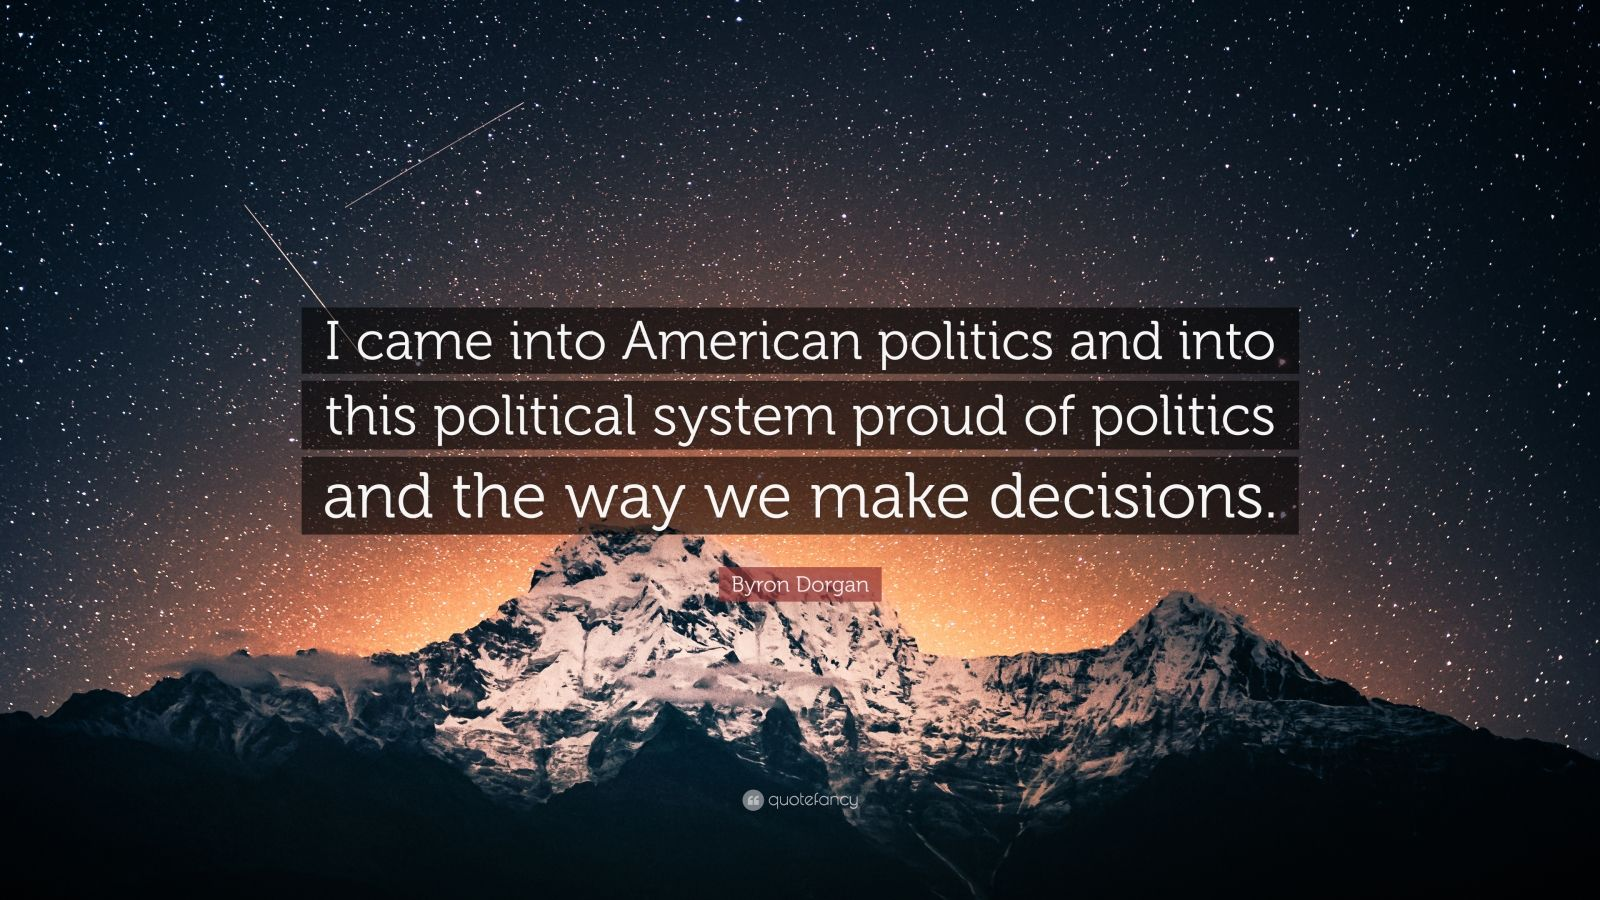 Byron Dorgan Quote I Came Into American Politics And This Political System Proud